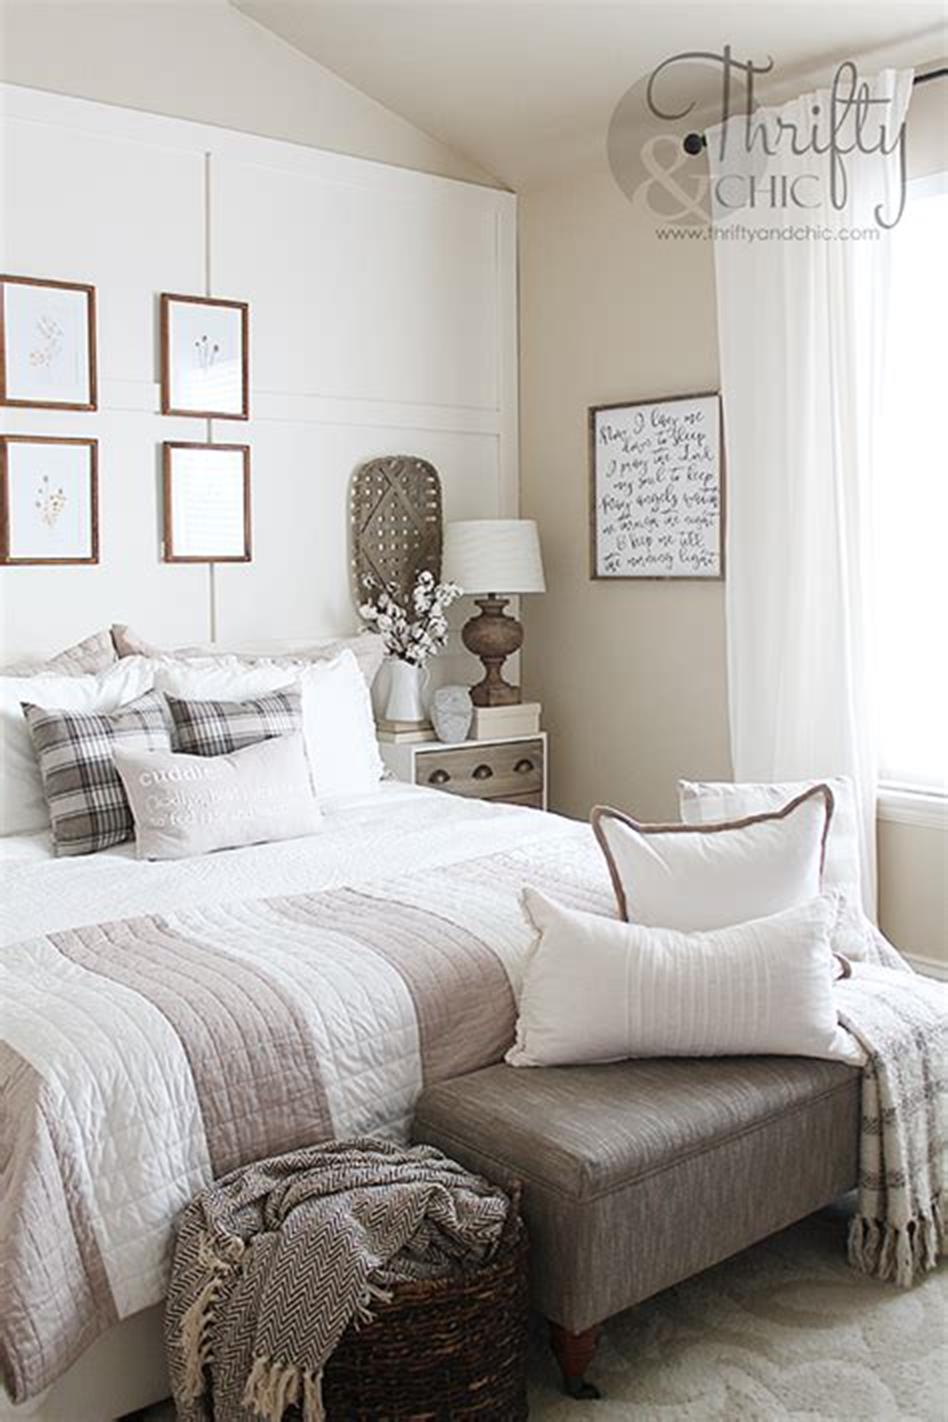 48 Stunning Farmhouse Master Bedroom Design Ideas 2019 37